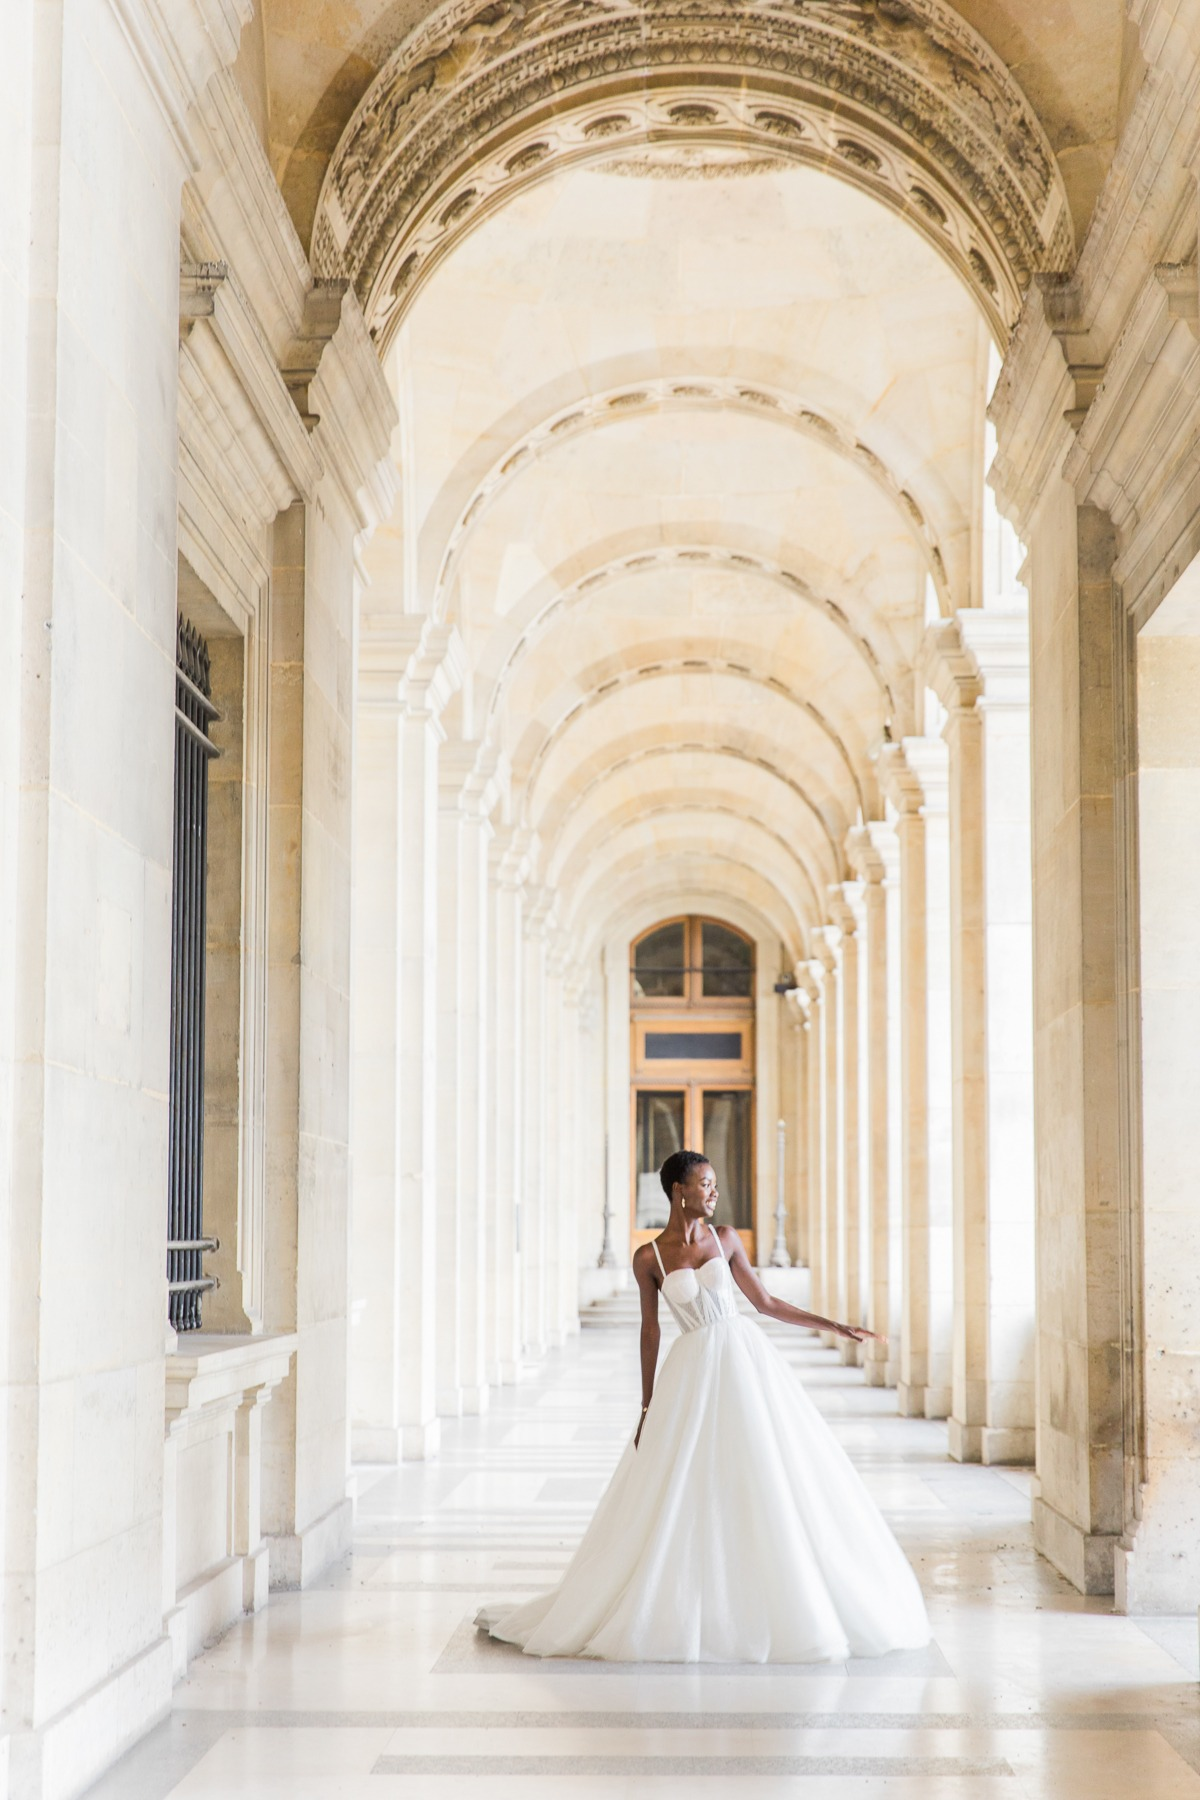 With Her Crown, Her Cape, and Her Boundless Parisian Chicness, This Beautiful Black Bride Is Giving Us All the Goals